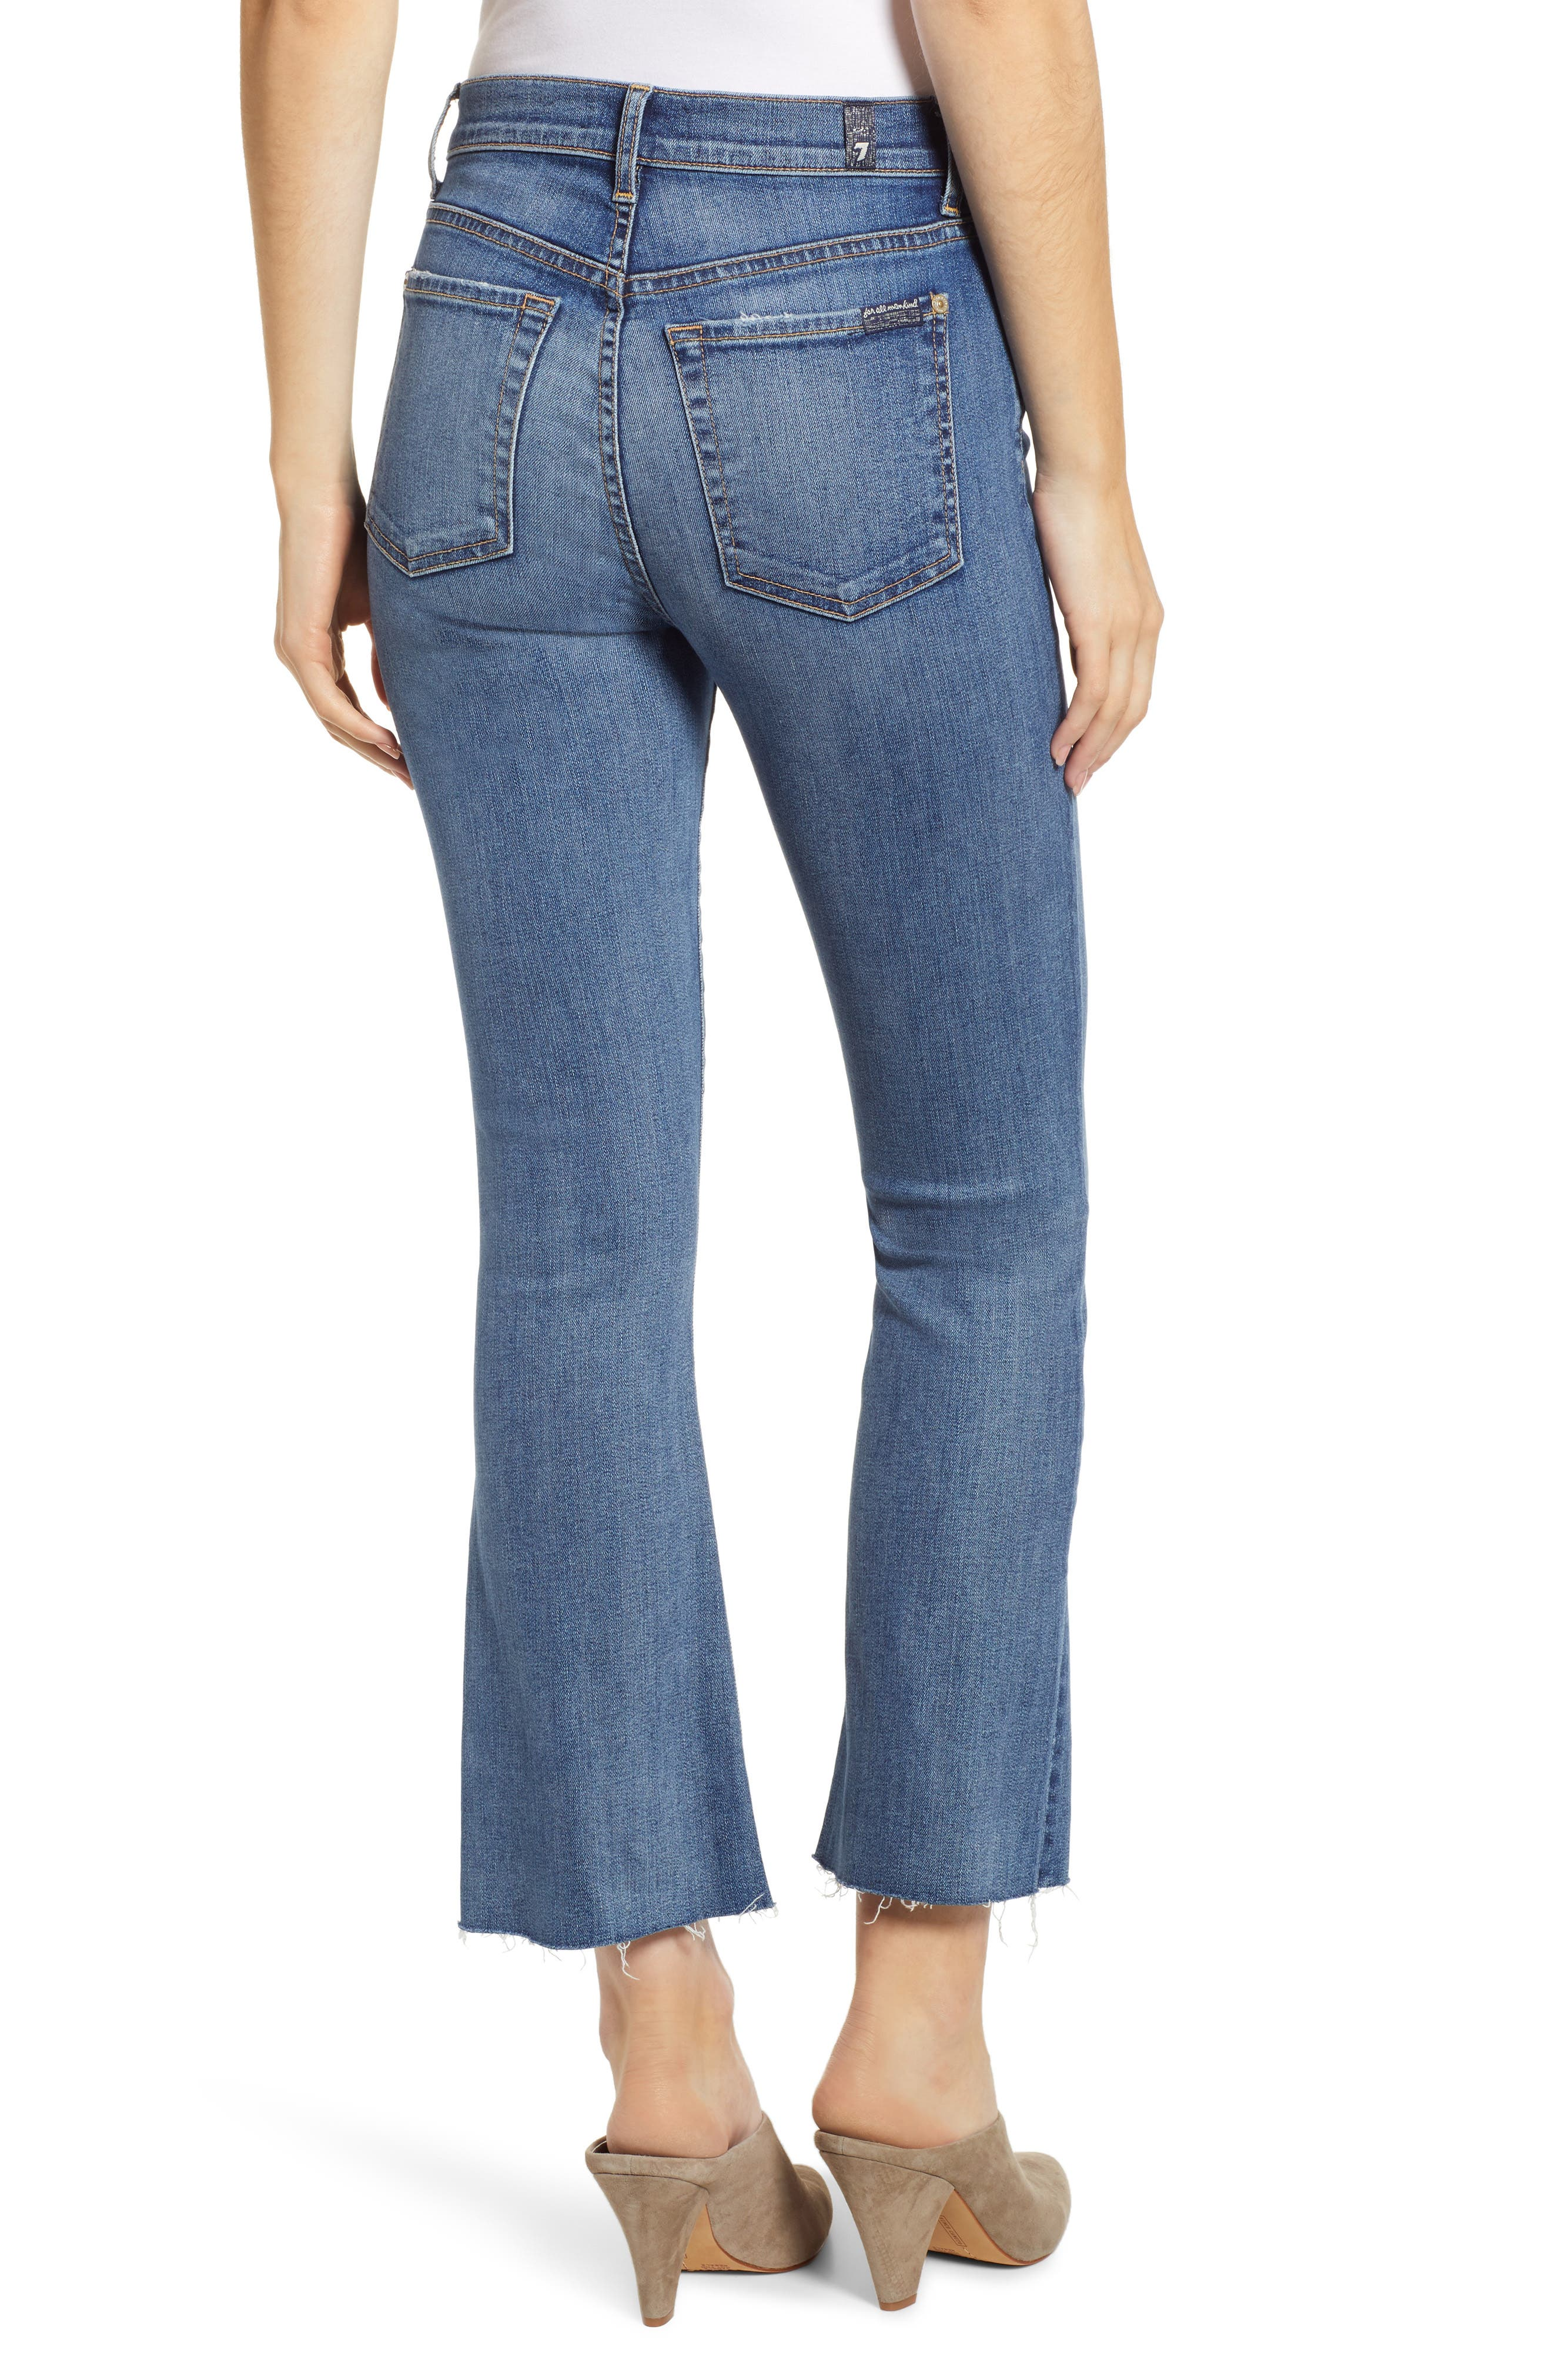 7 FOR ALL MANKIND<SUP>®</SUP>, High Waist Slim Crop Flare Jeans, Alternate thumbnail 2, color, CANYON RANCH